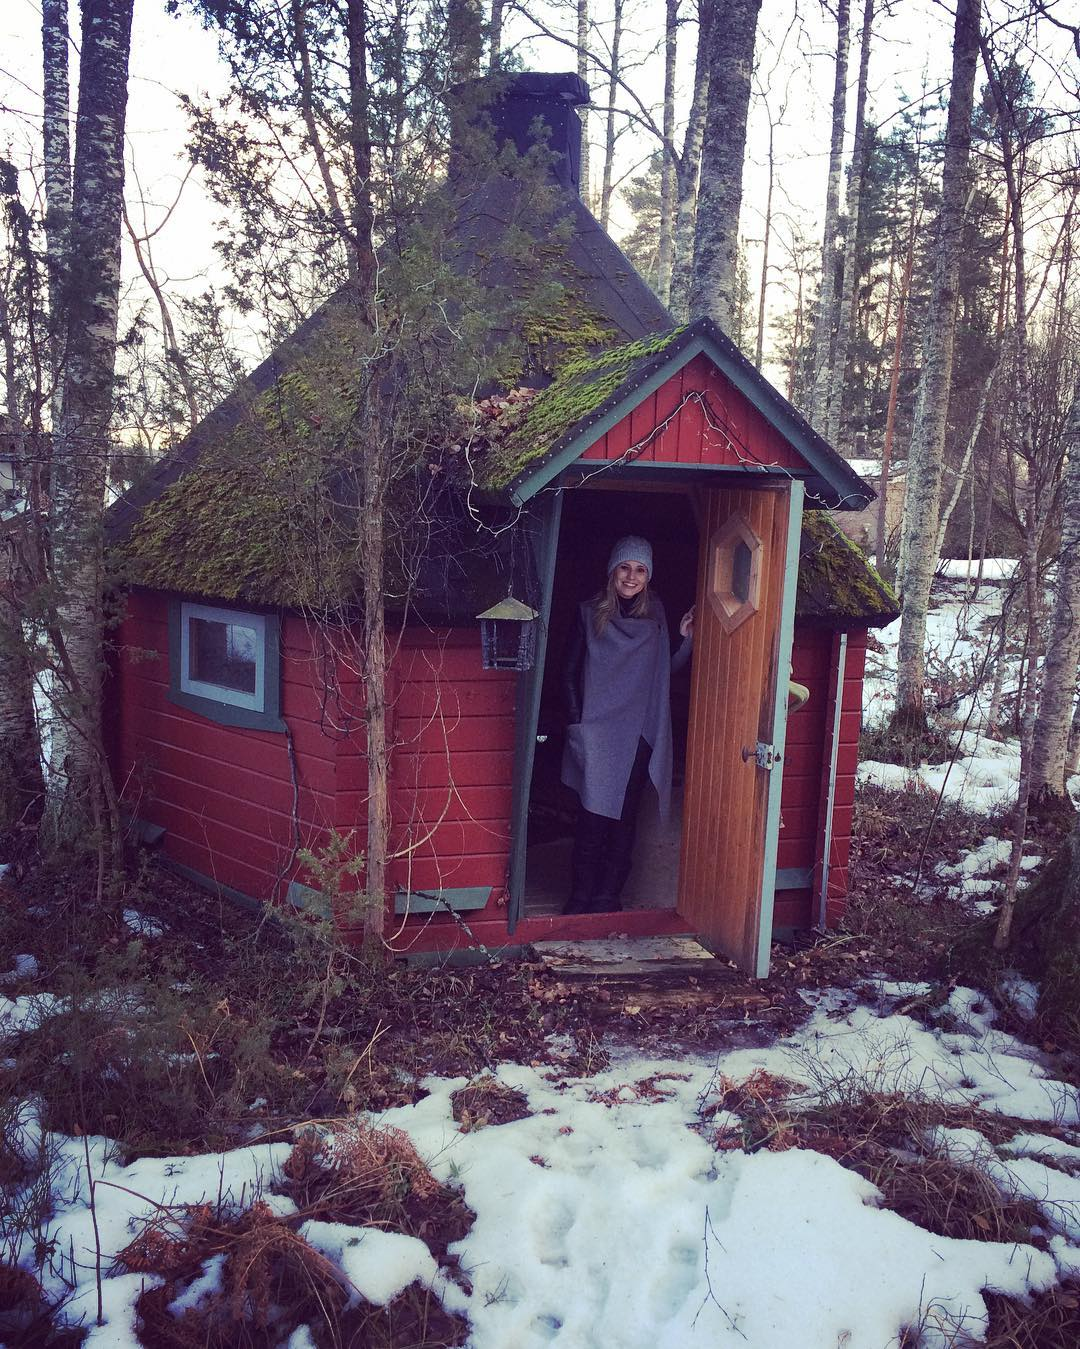 I could totally see myself living here :) #happy #finland #tour #musician #luanparle #clivebarnes #singer #songwriter #followforfollow #follow4follow #follow4likes #like4likes #like for follow #shoutout #shoutoutforshoutout #shoutout4shoutout #girlsinmusic #female #independent #independentartist #commentforcomment #comment4comment #commentforlike #irish #snow